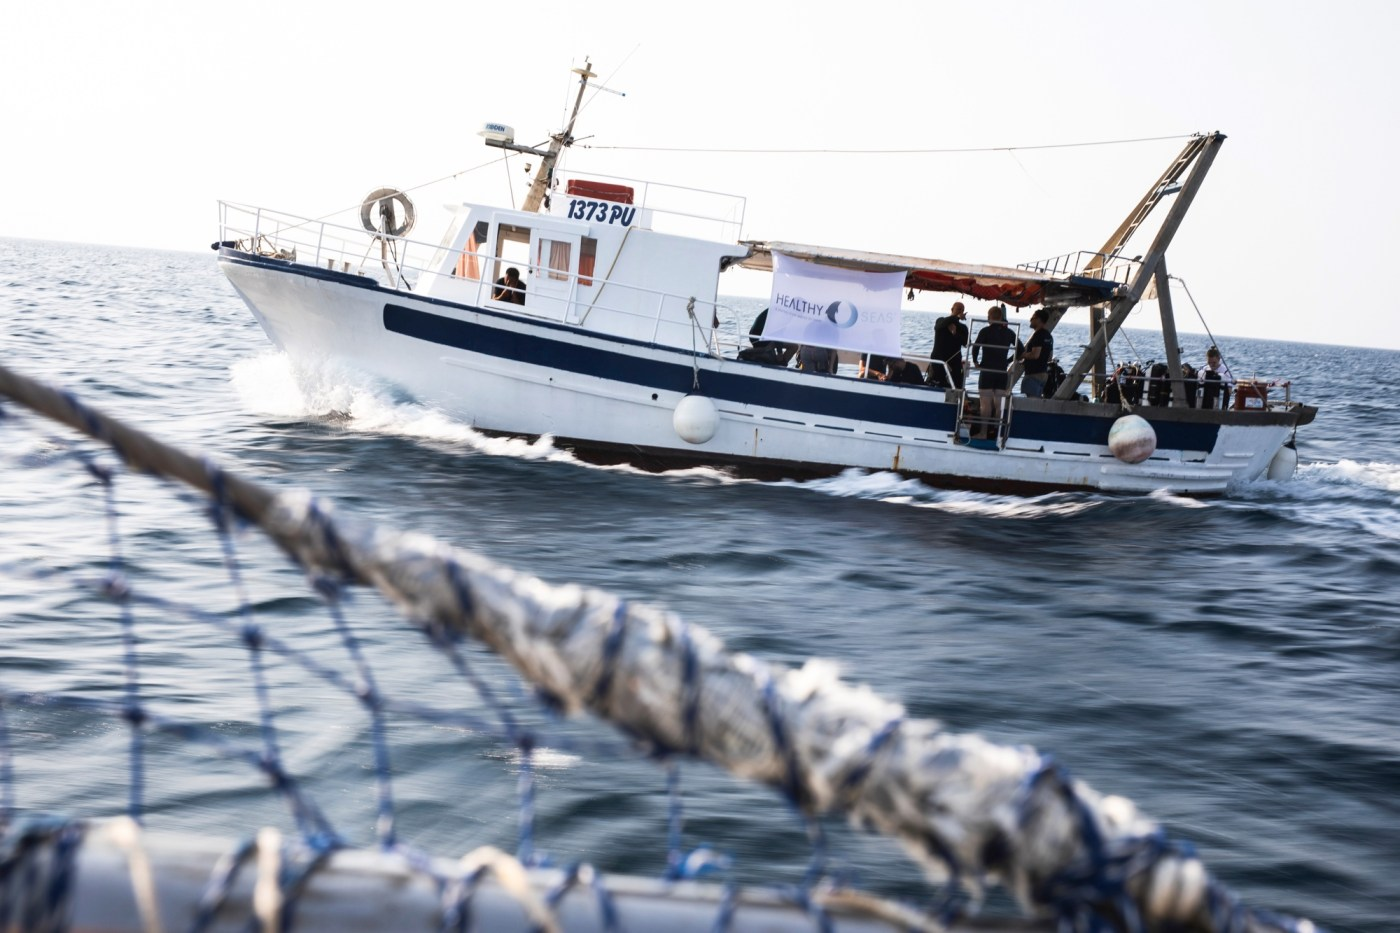 Since its start in 2013 Healthy Seas has collected over 500,000kgs of fishing nets